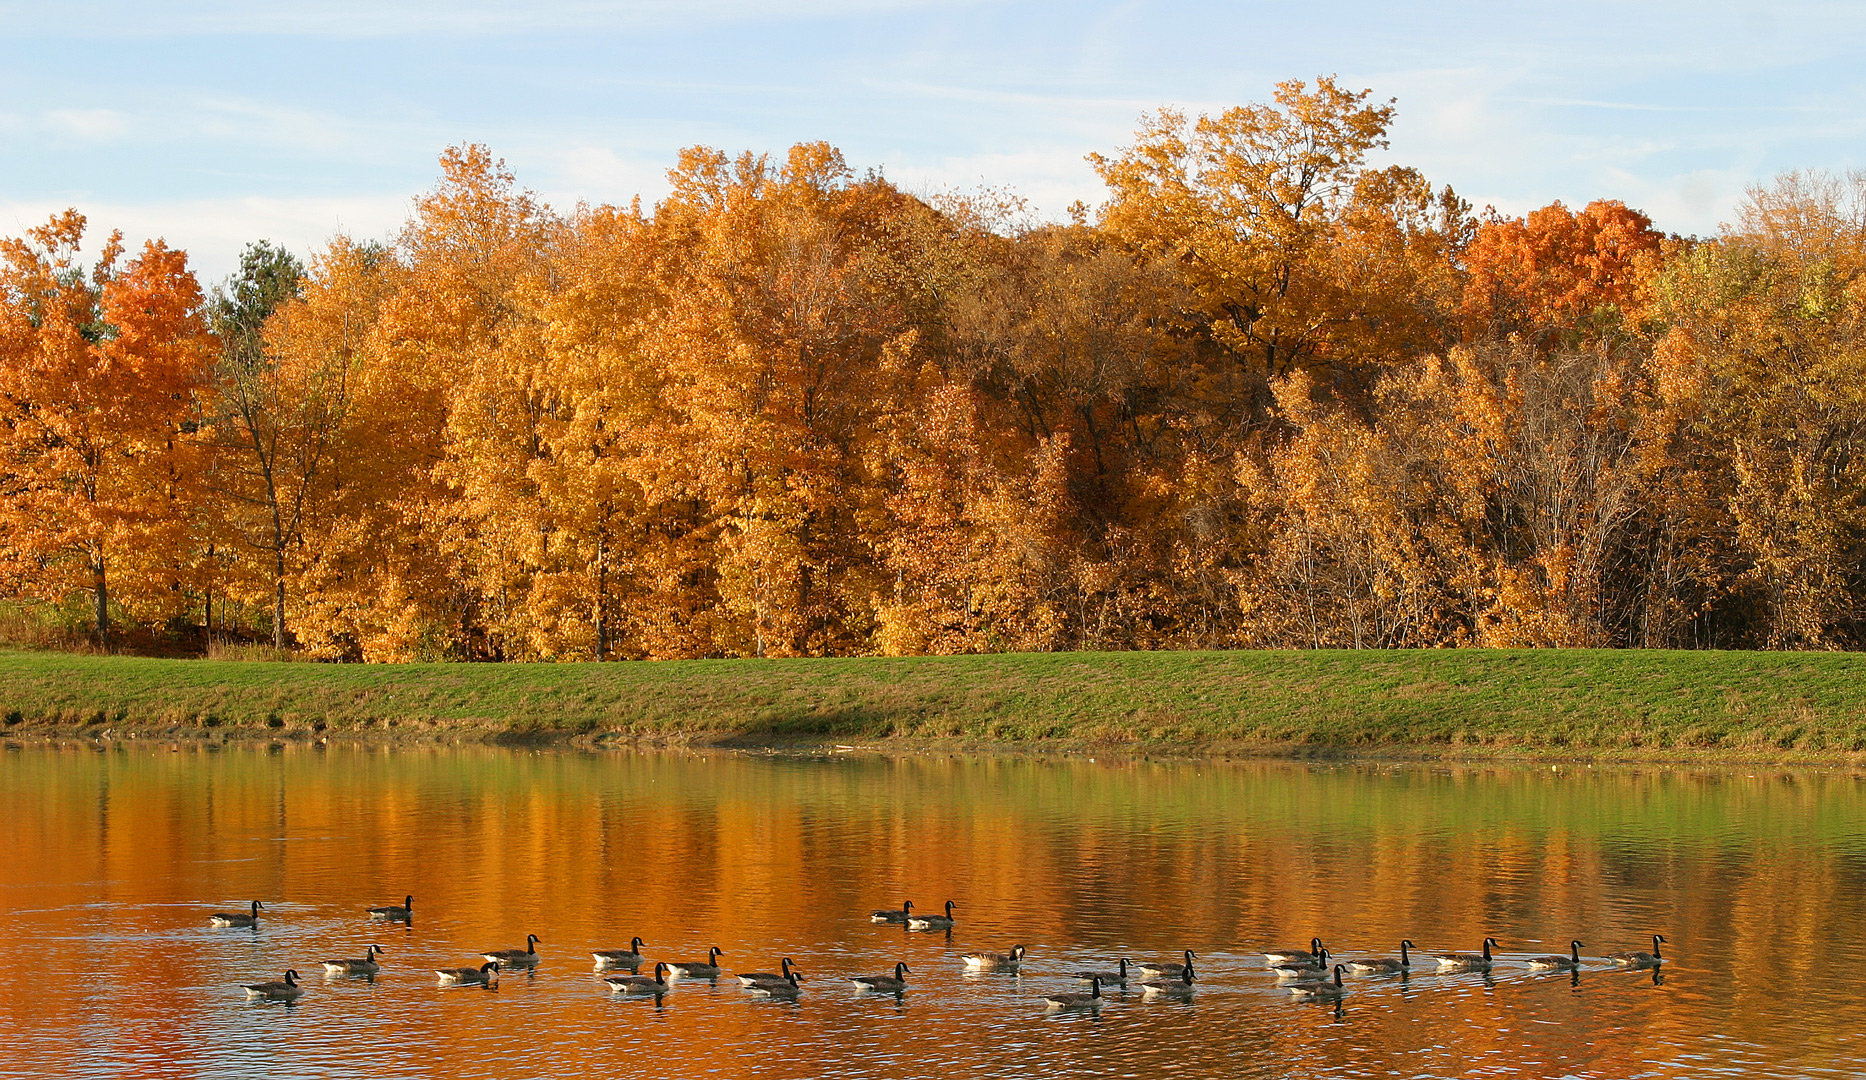 Geese on Buzzard's Roost Lake